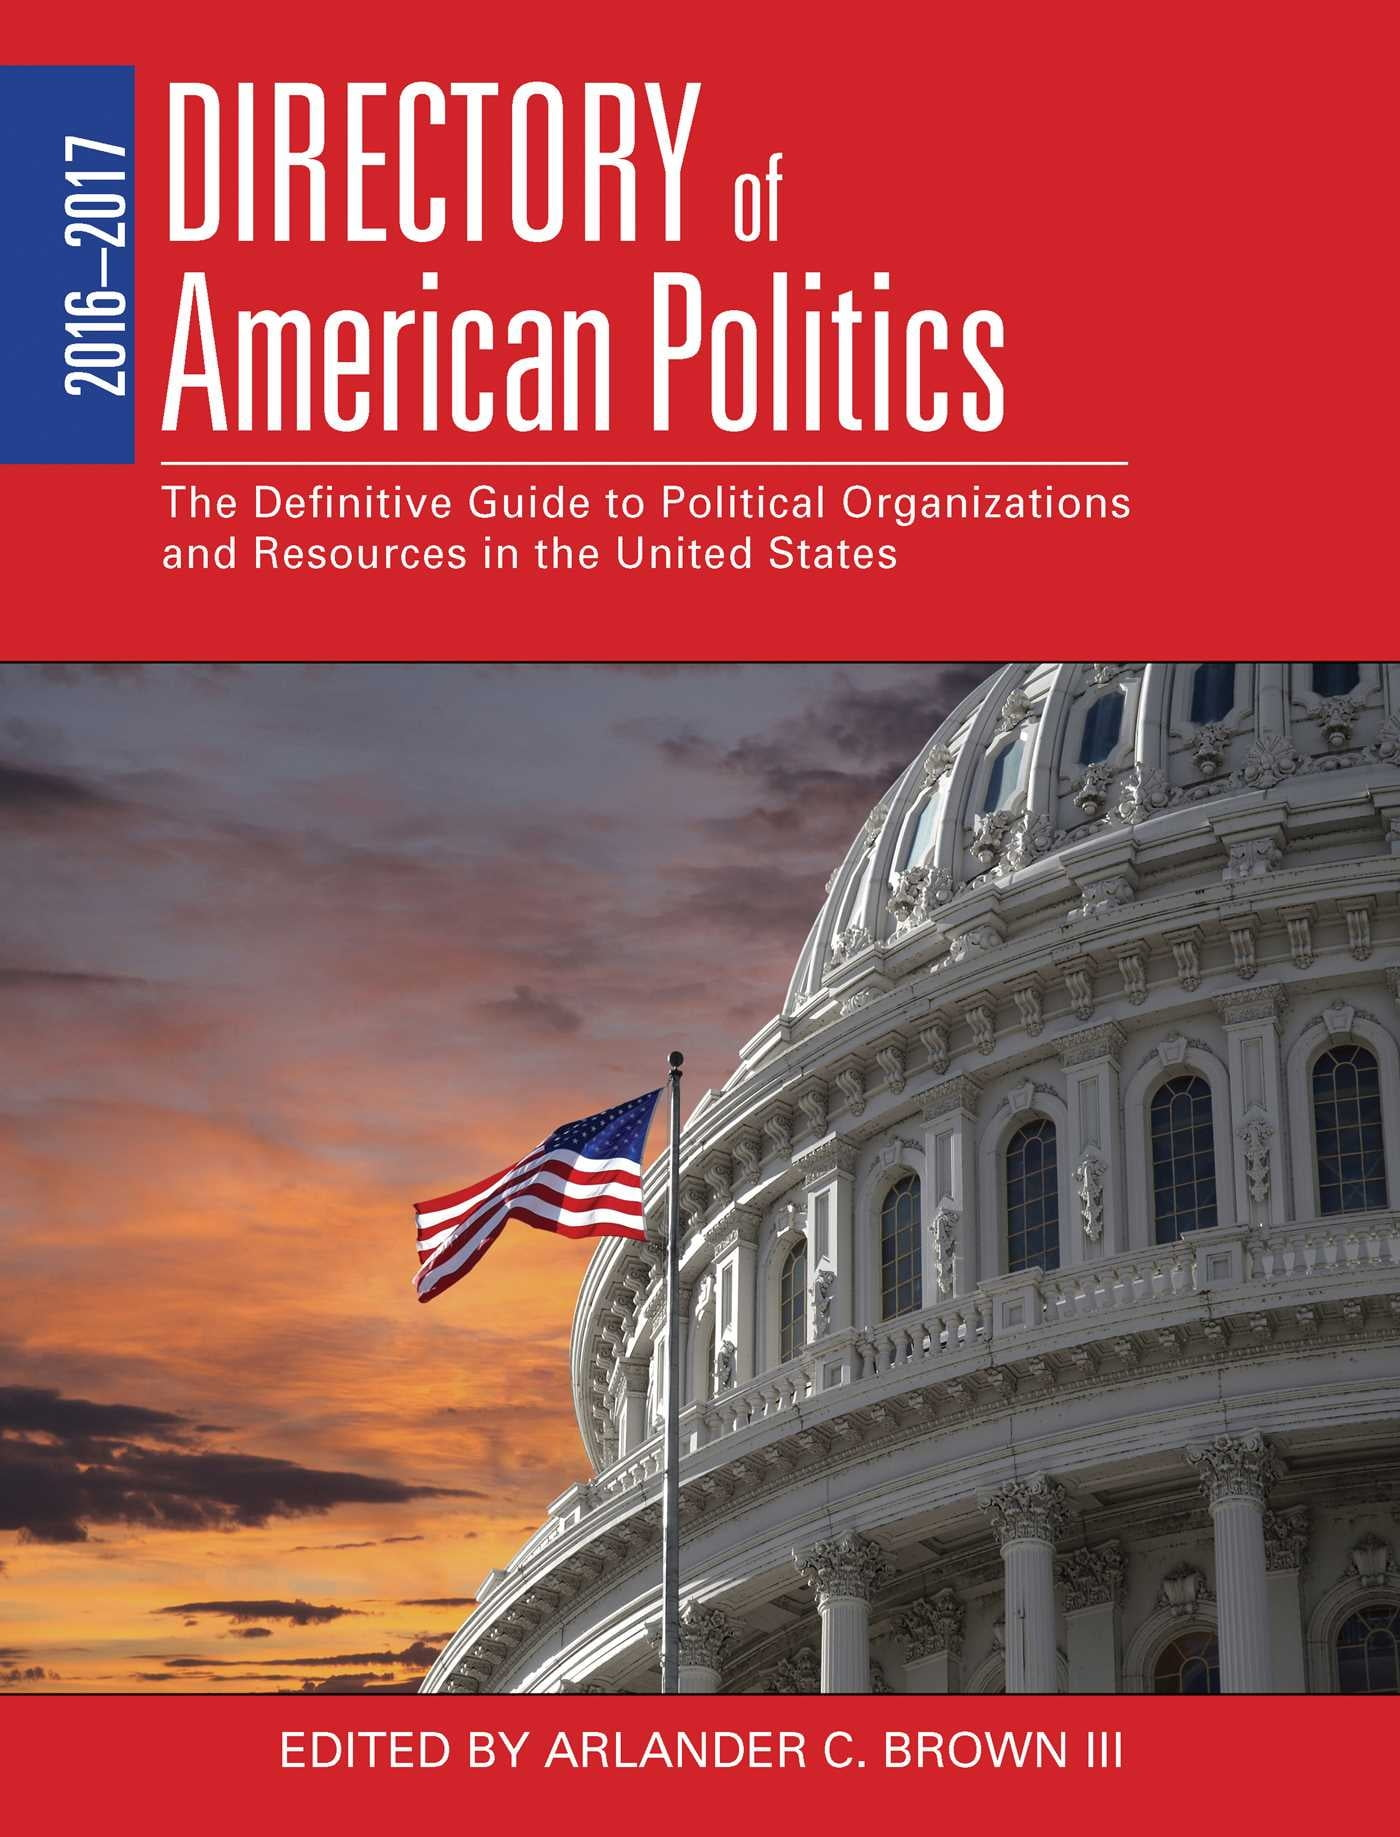 2016-2017 Directory of American Politics by Unknown author - PDF, EPUB. Electronic version of the book